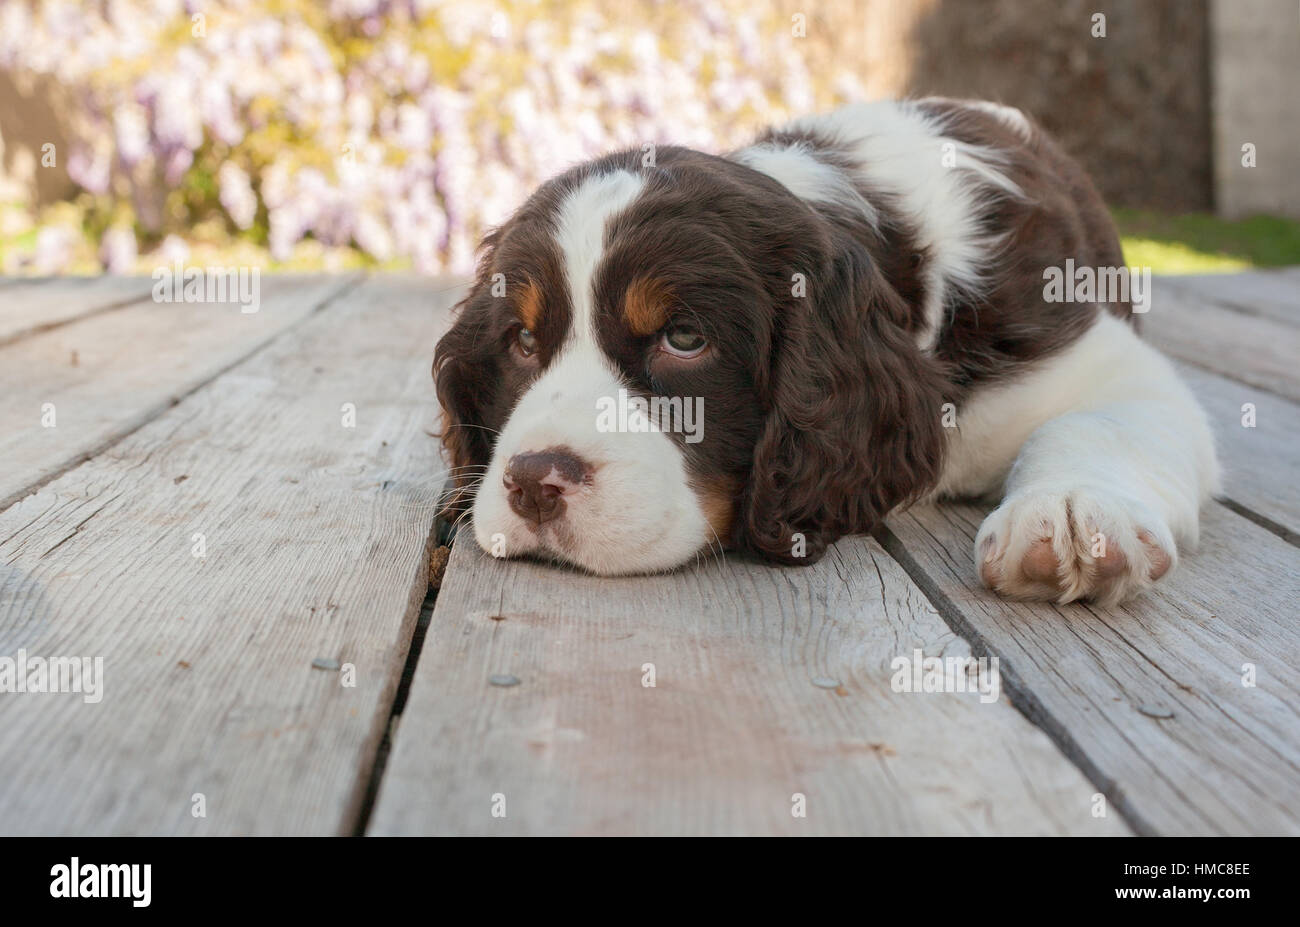 Sweet young springer spaniel puppy dog lays down with her head on the wooden deck.  She is brown and white with - Stock Image